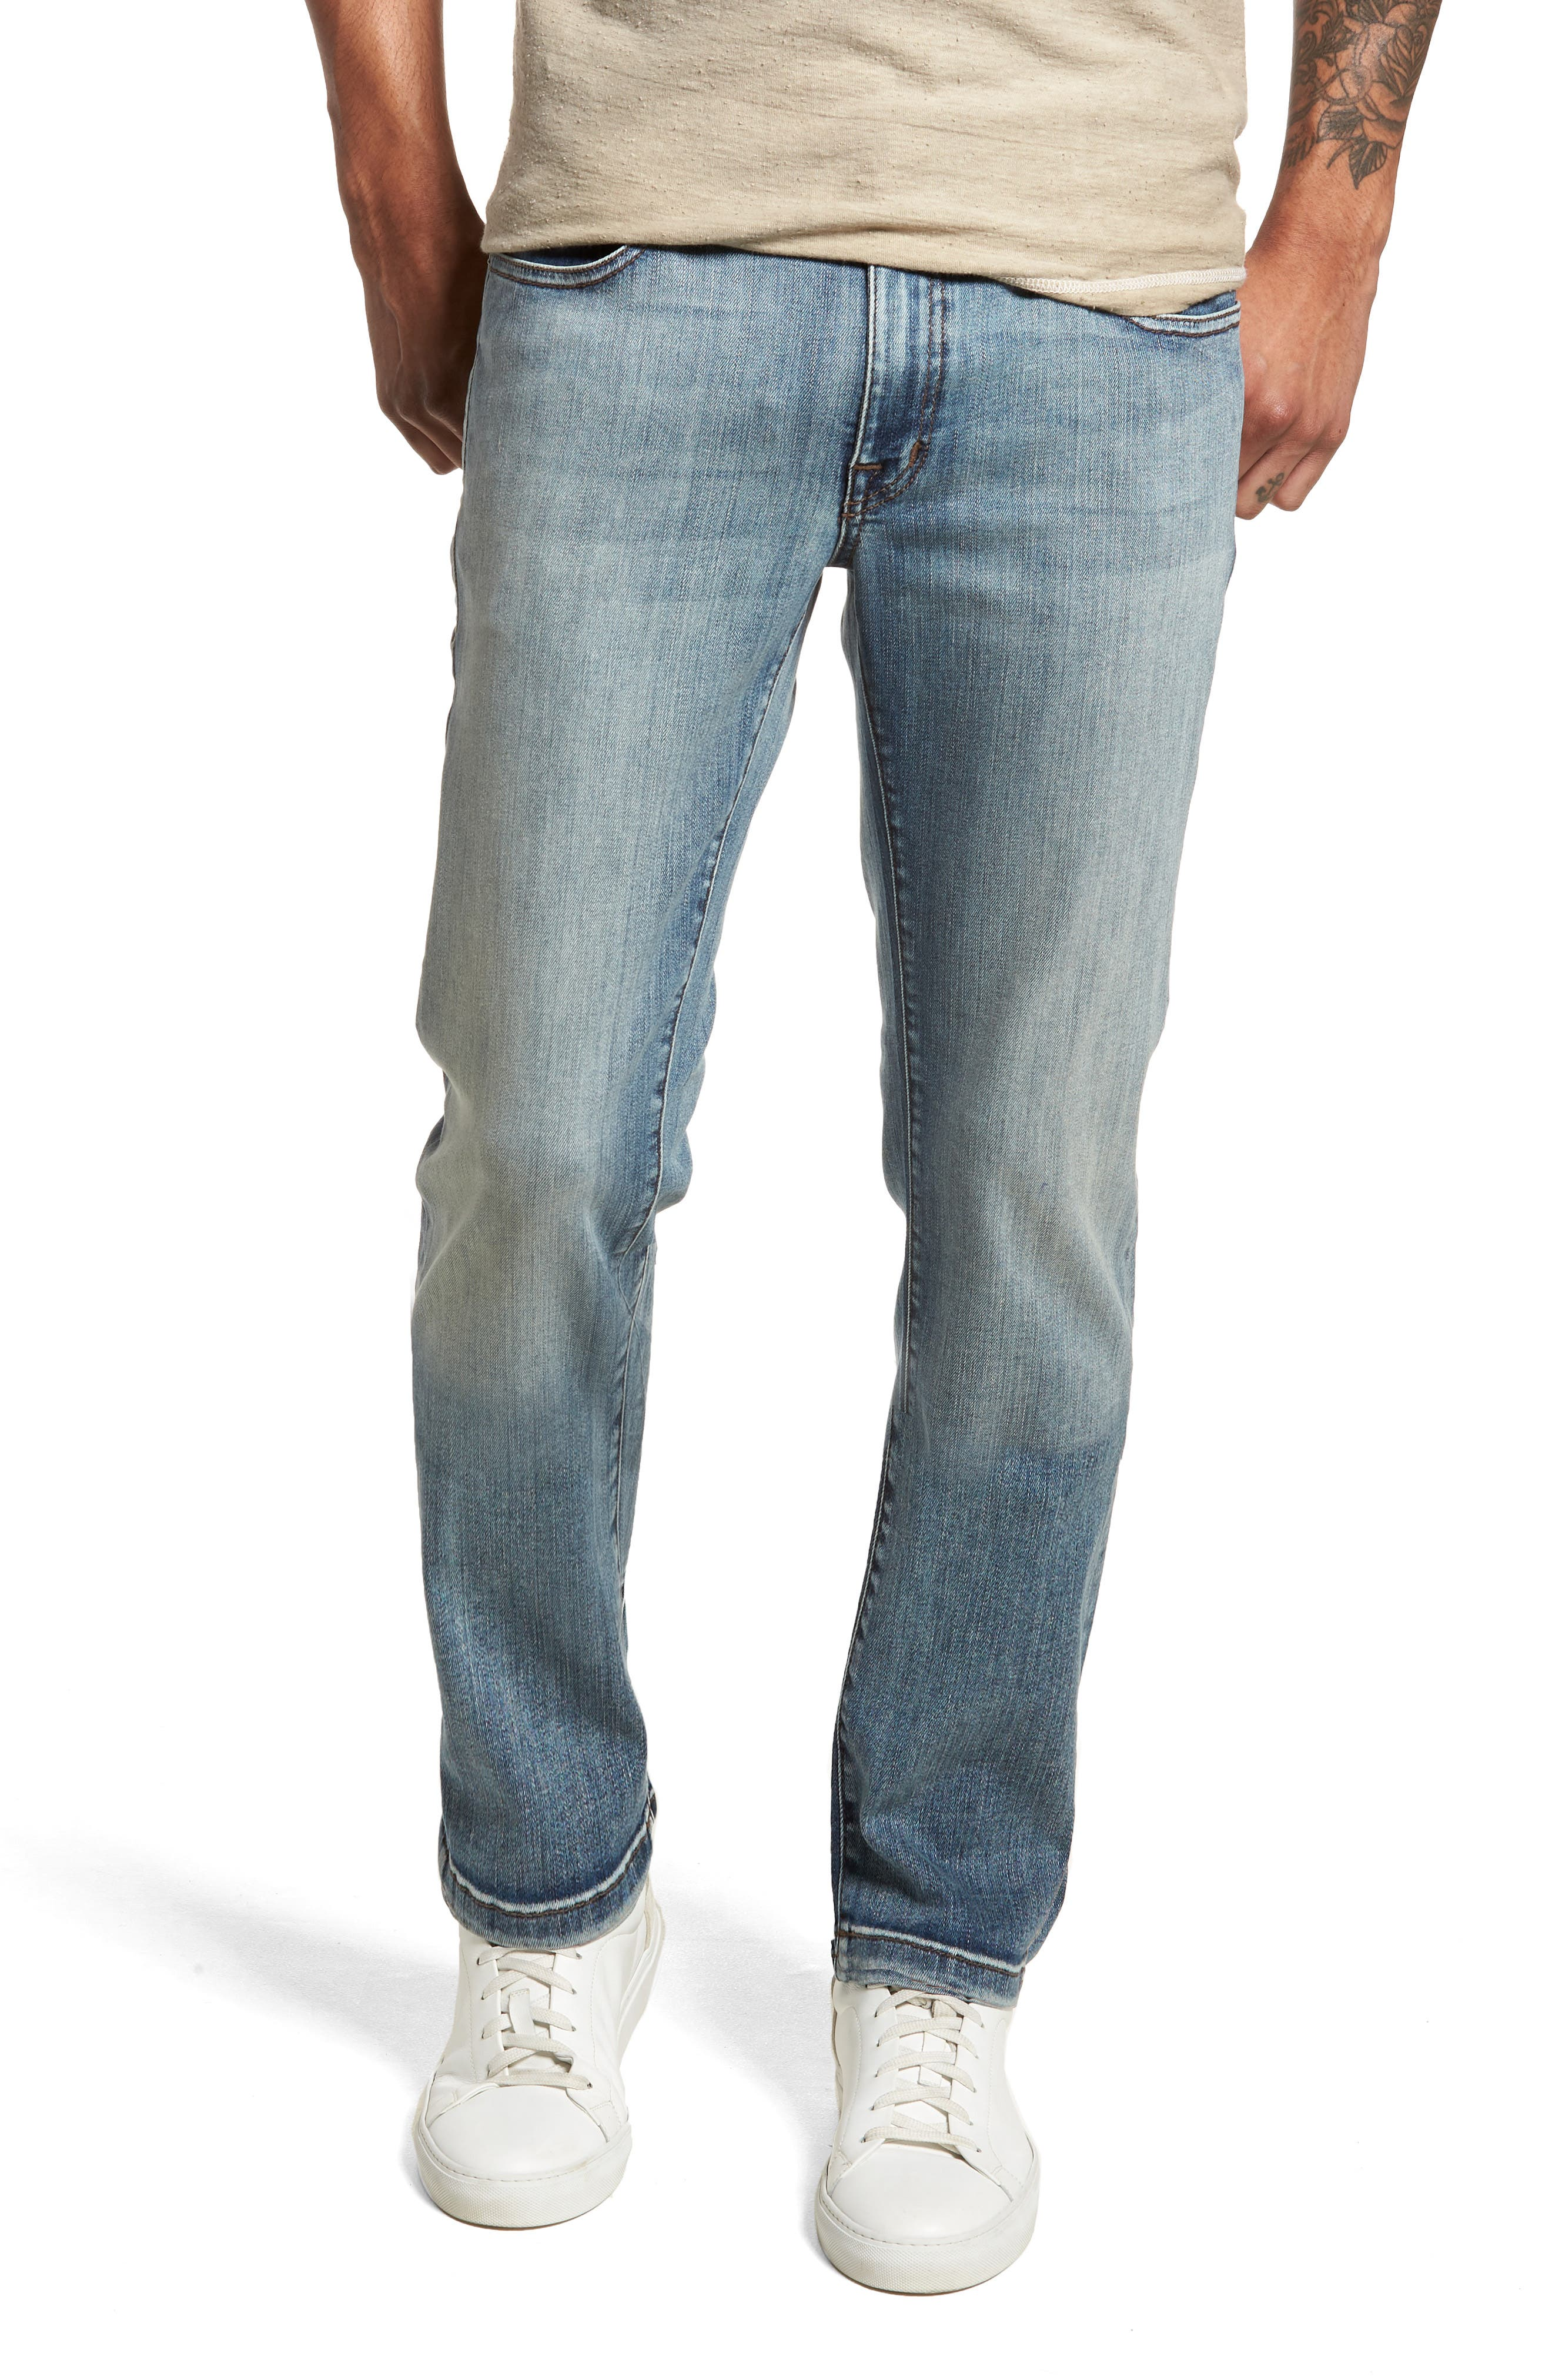 Jimmy Slim Fit Jeans,                         Main,                         color, 400